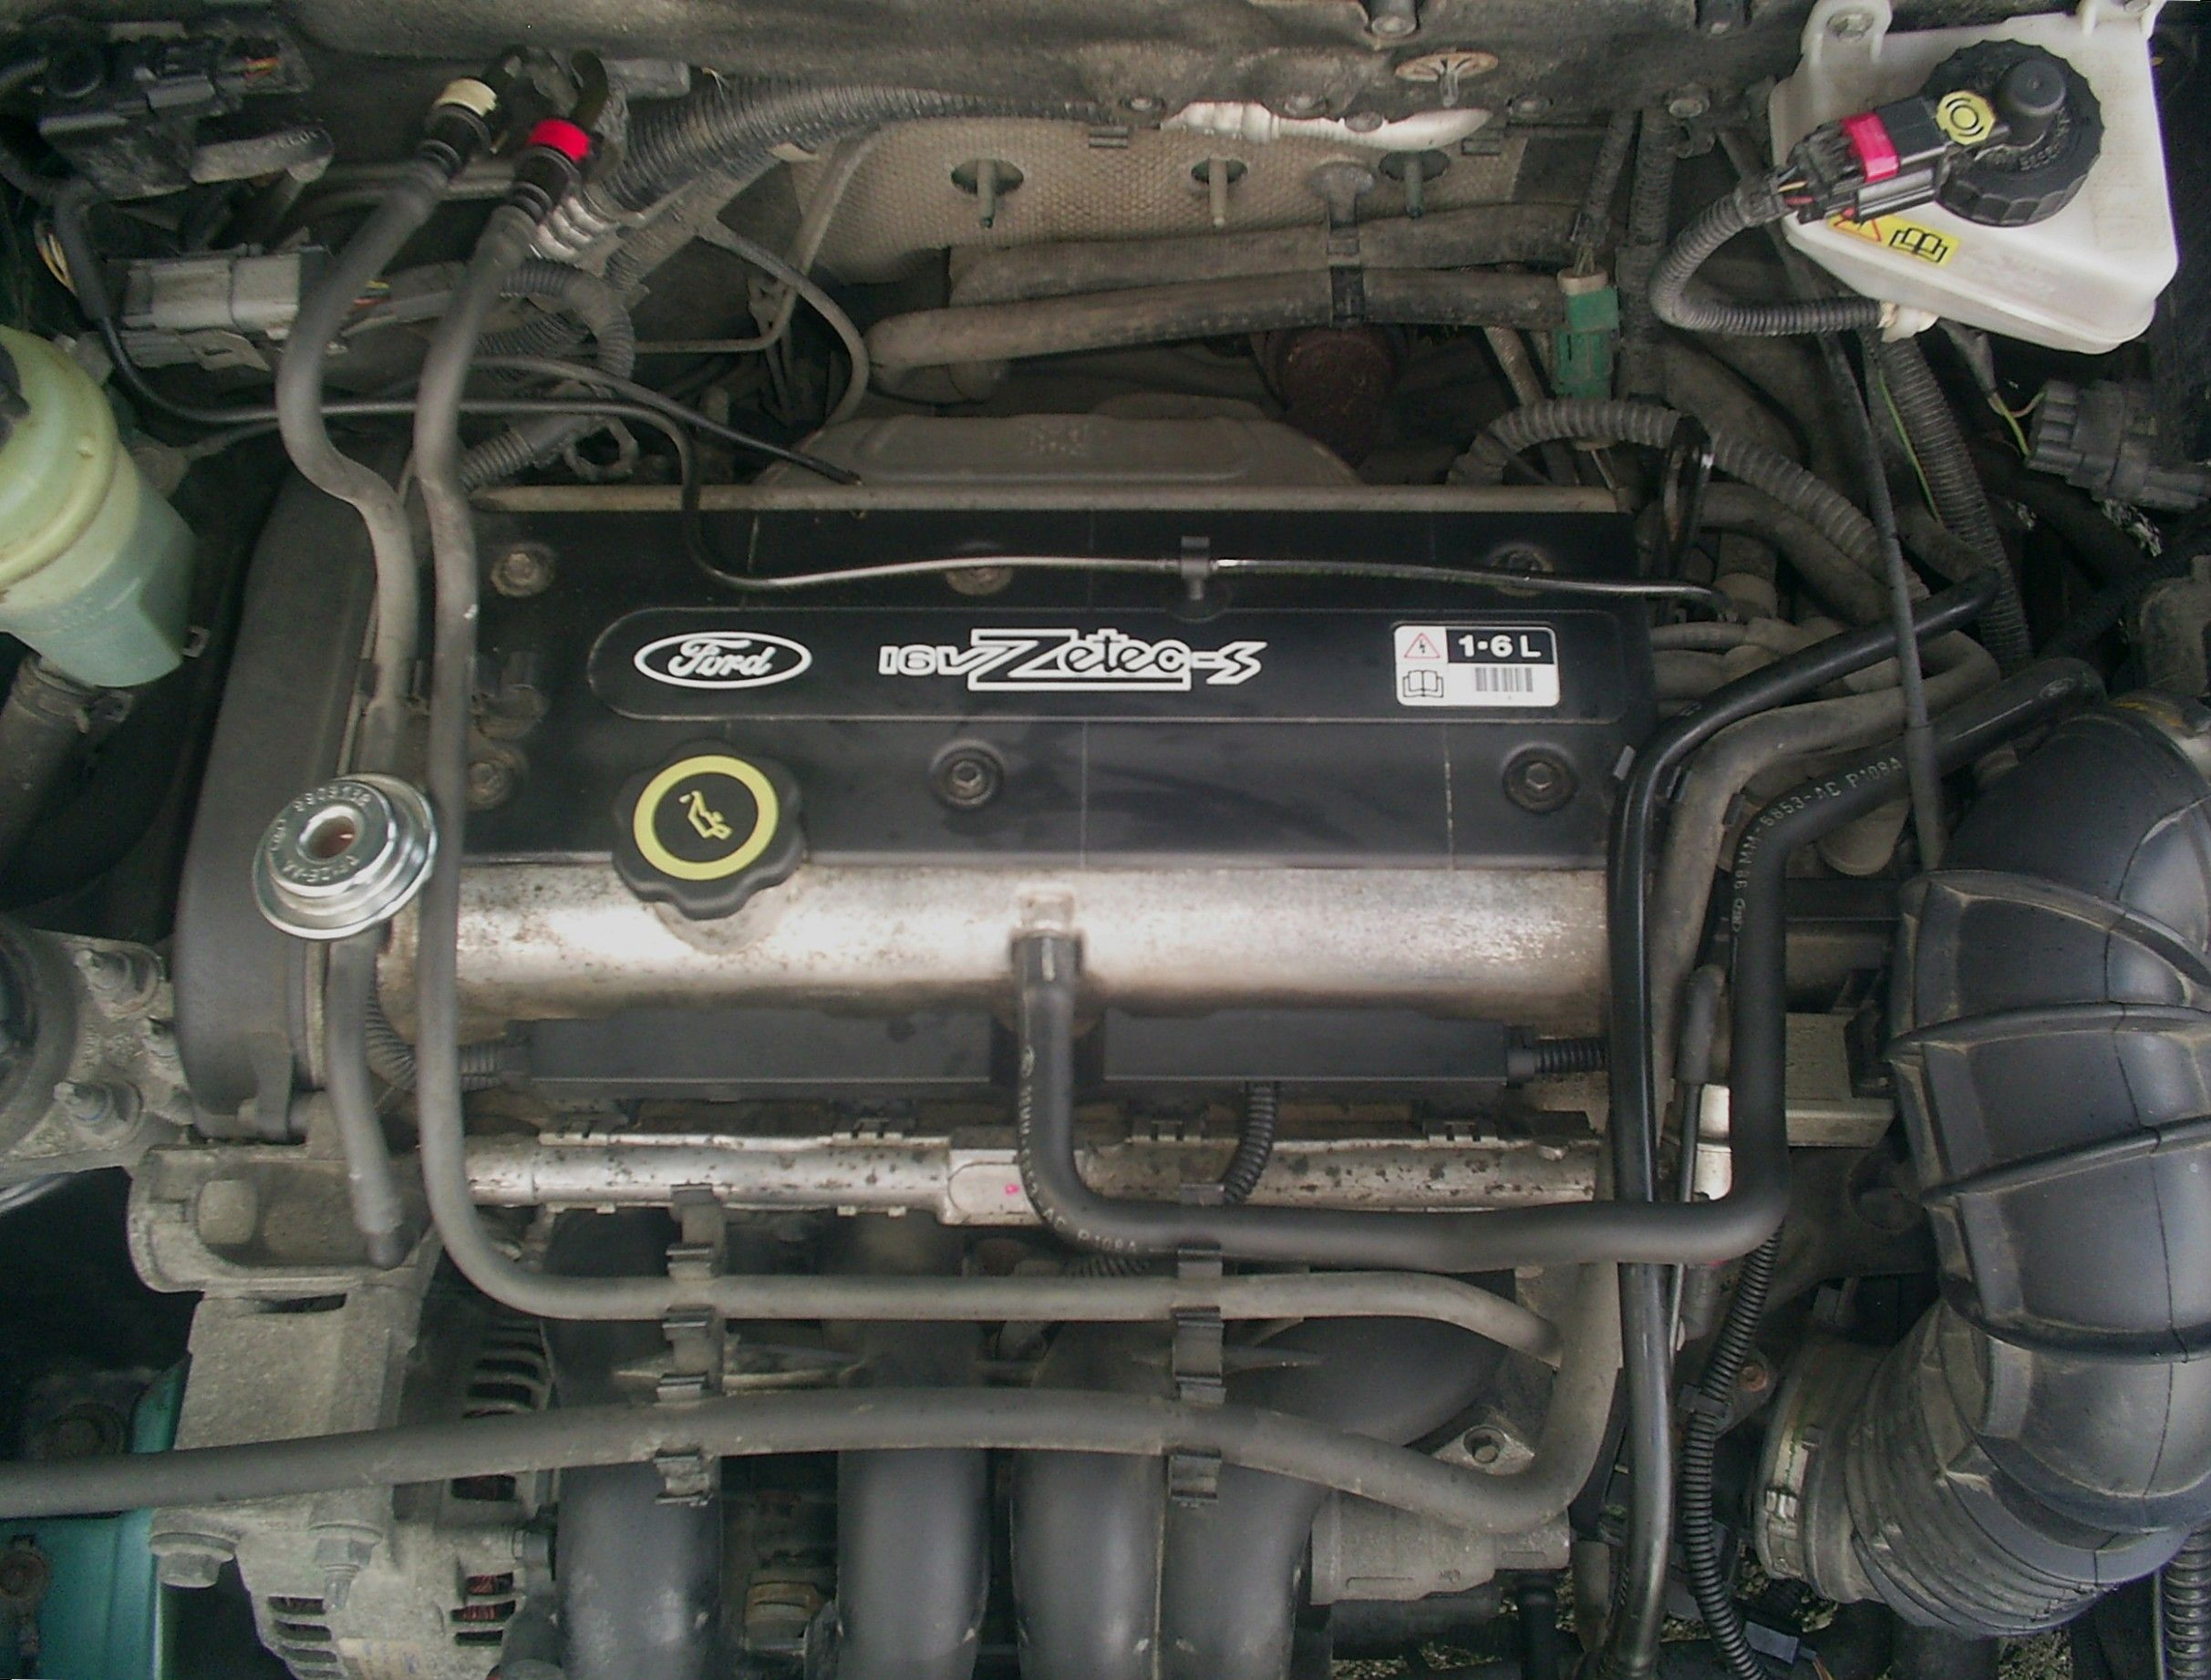 Ford Focus 5 5 Zetec Engine Diagram In 2020 Ford Focus Engine